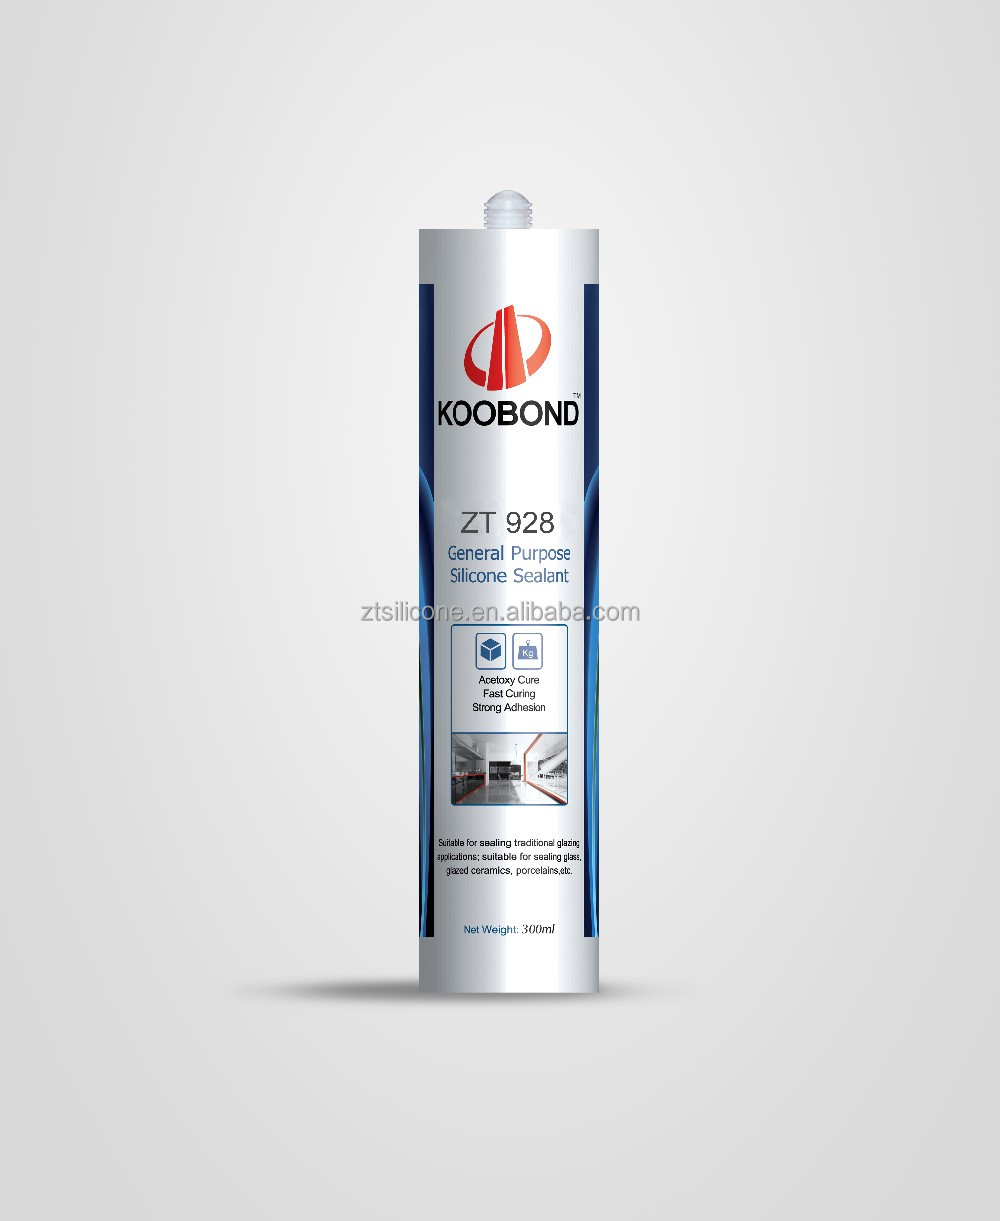 Acetoxy cure transparent silicone sealant for building